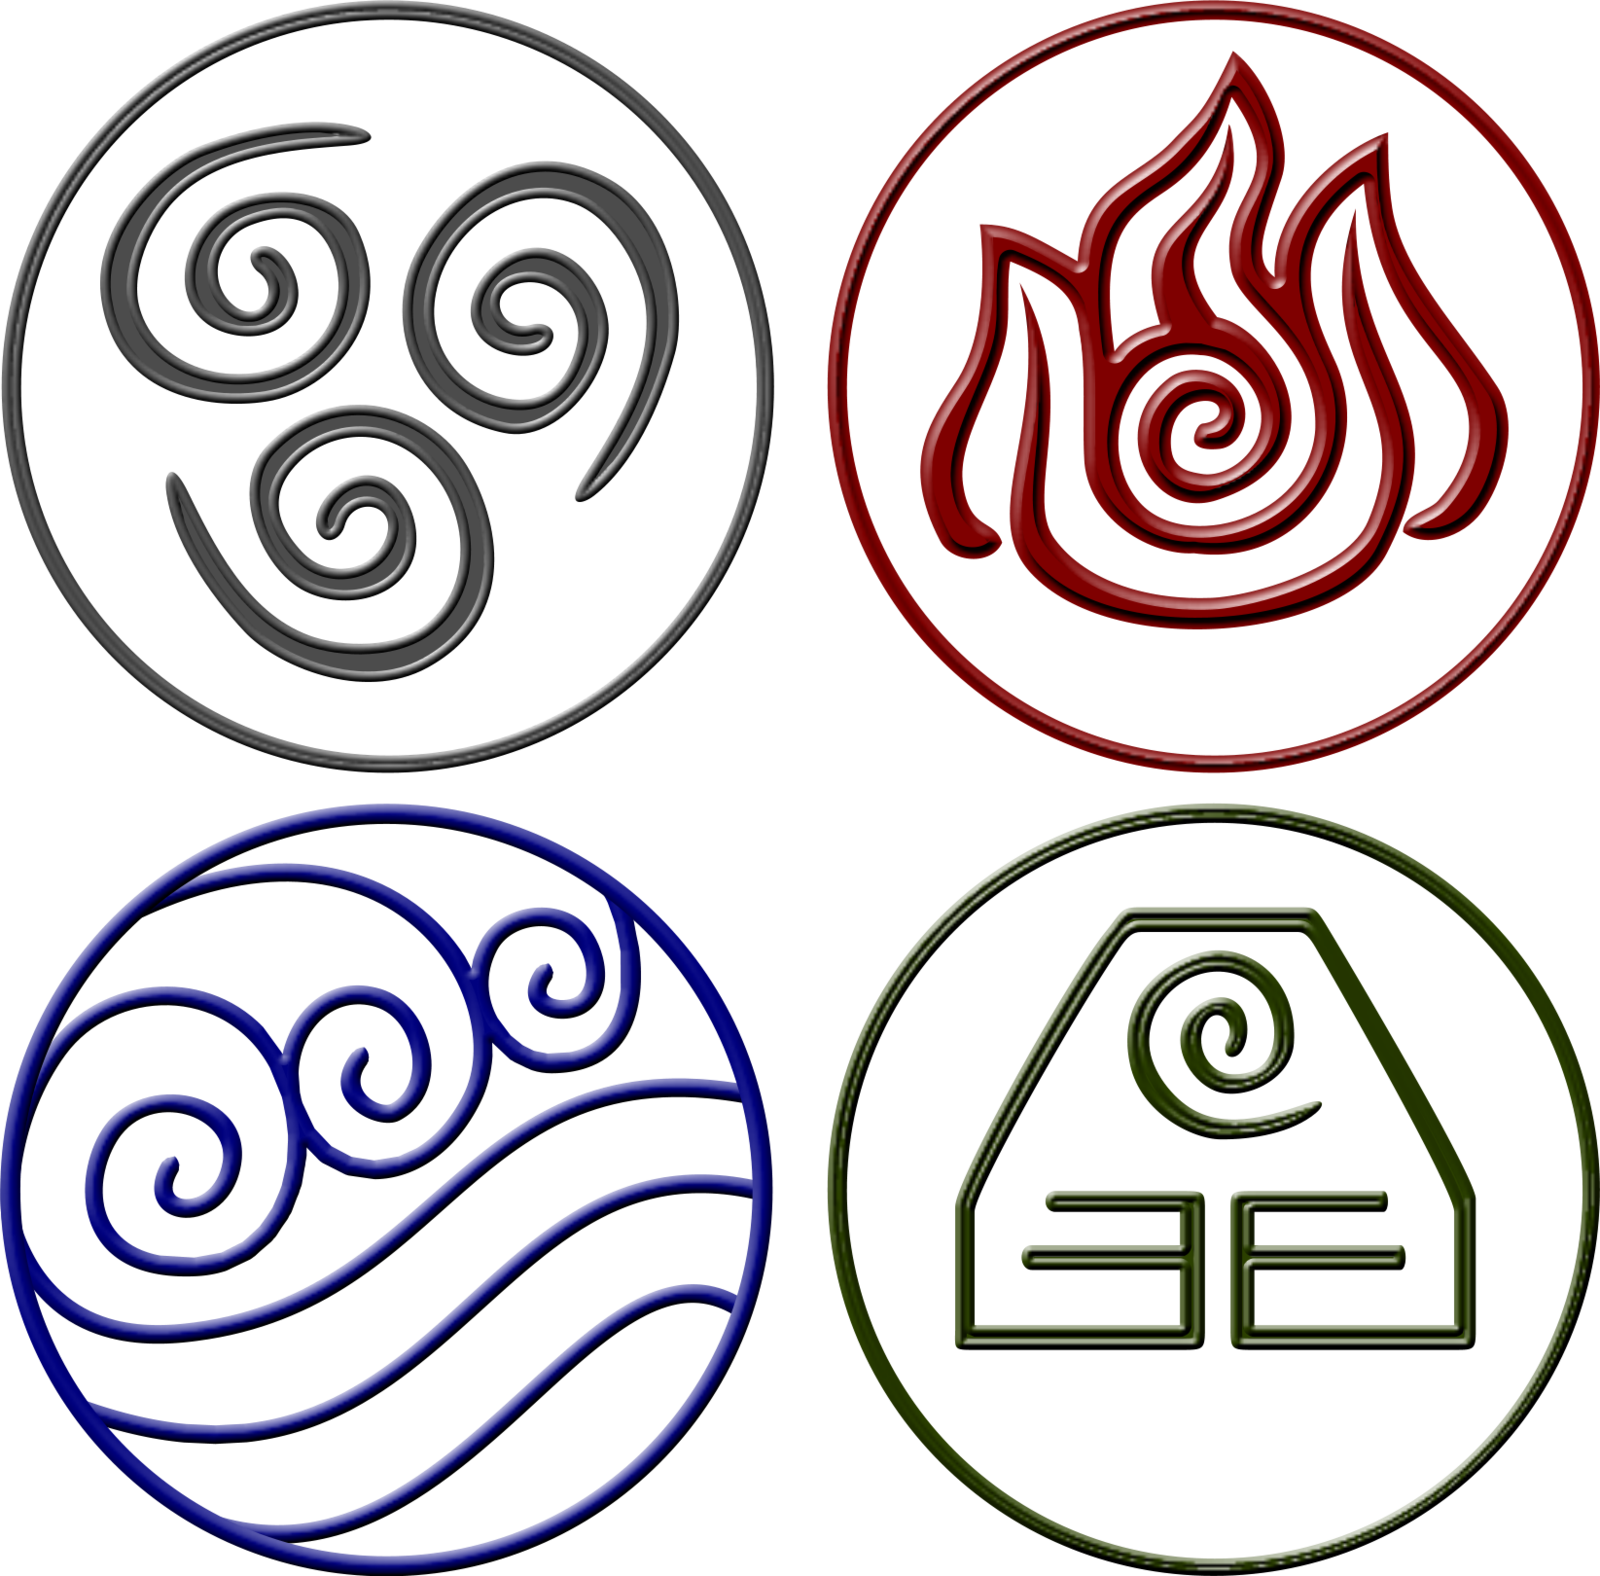 Avatar symbols png. Four elements displaying images